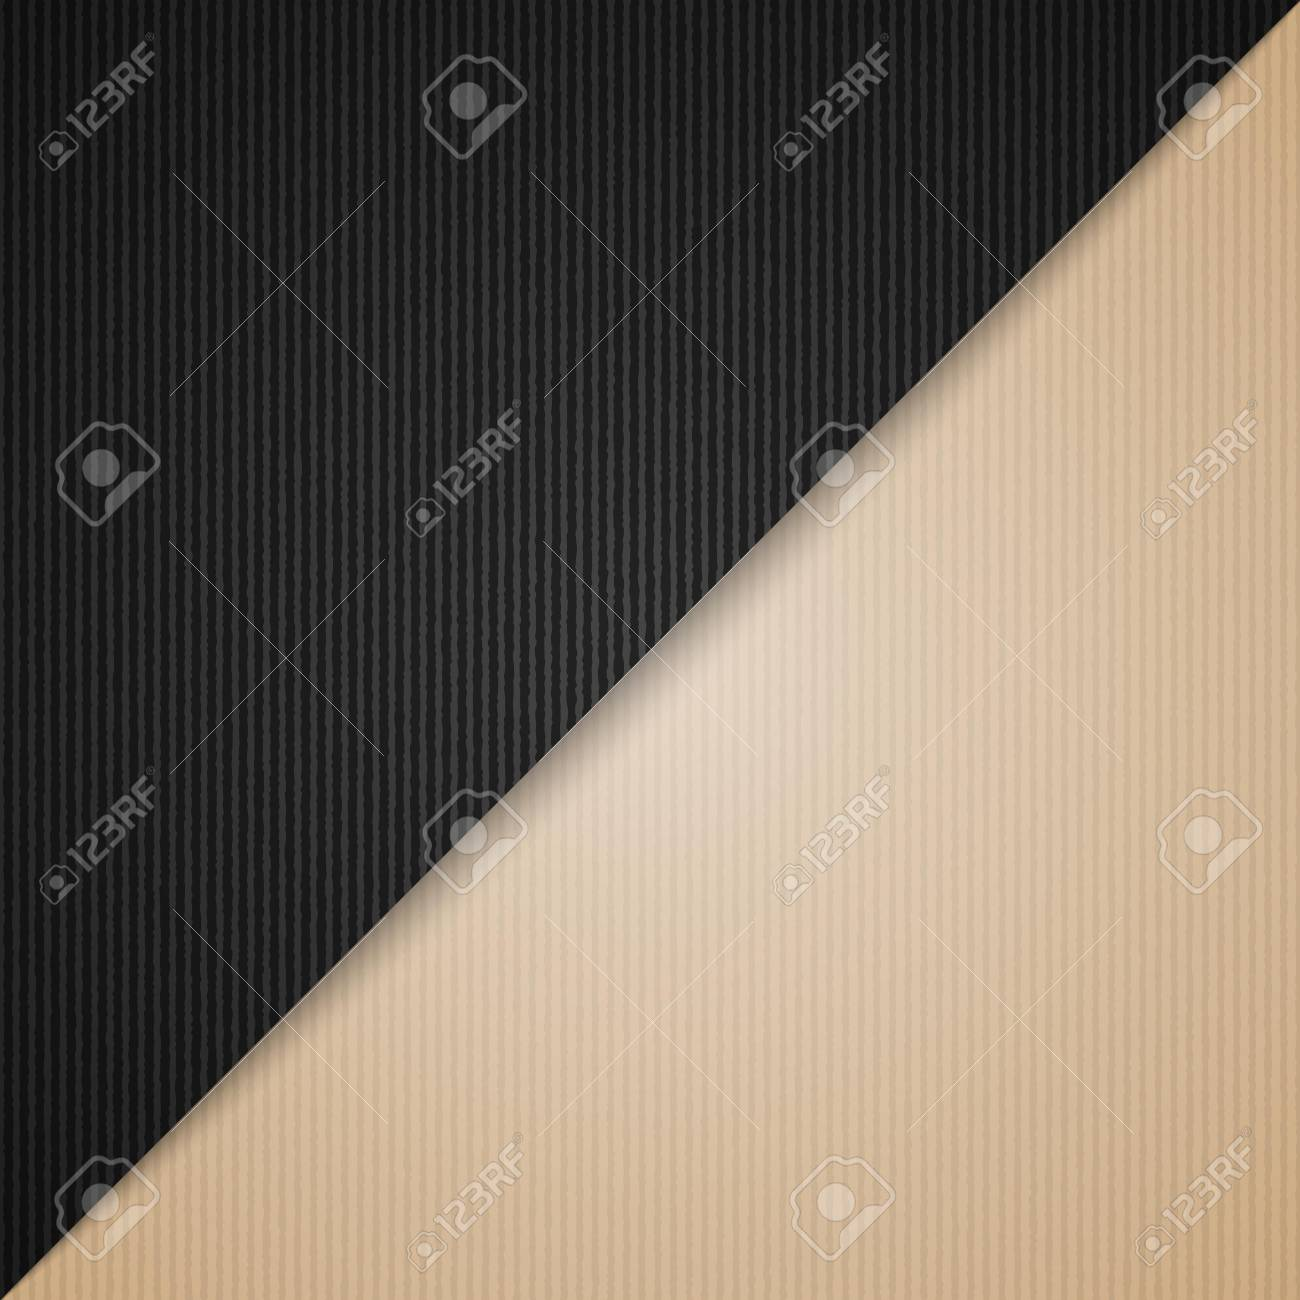 empty corrugated brown and black cardboard background vector